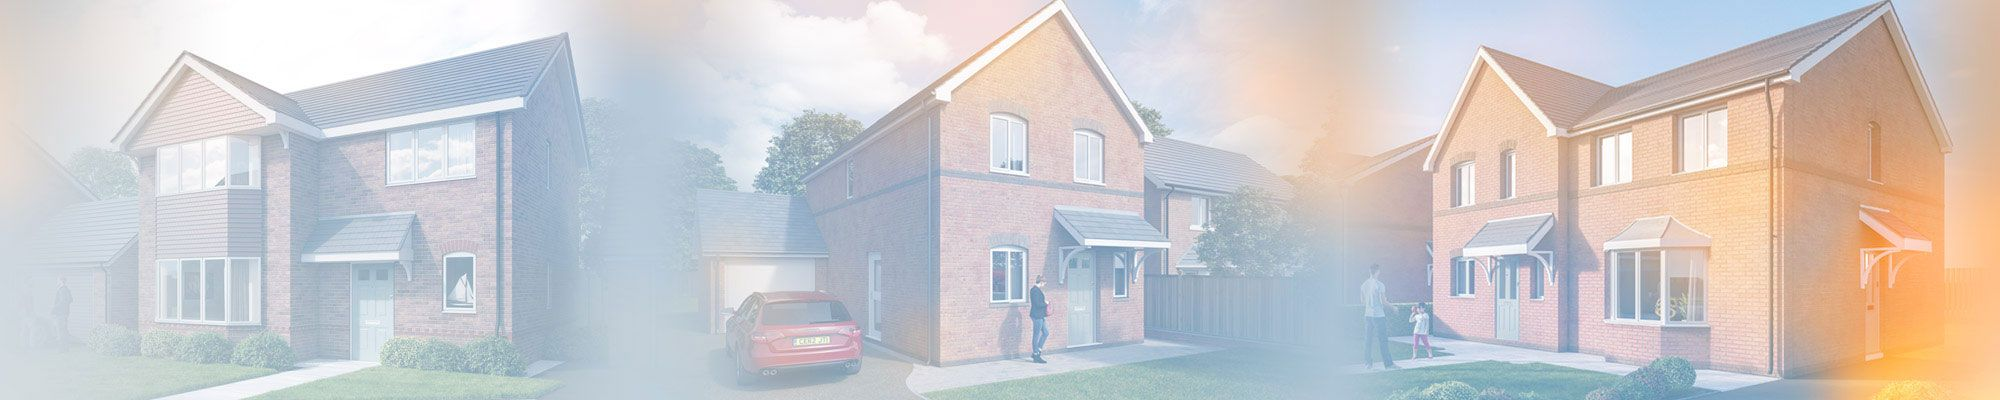 New homes in Wrexham built by Gower Homes